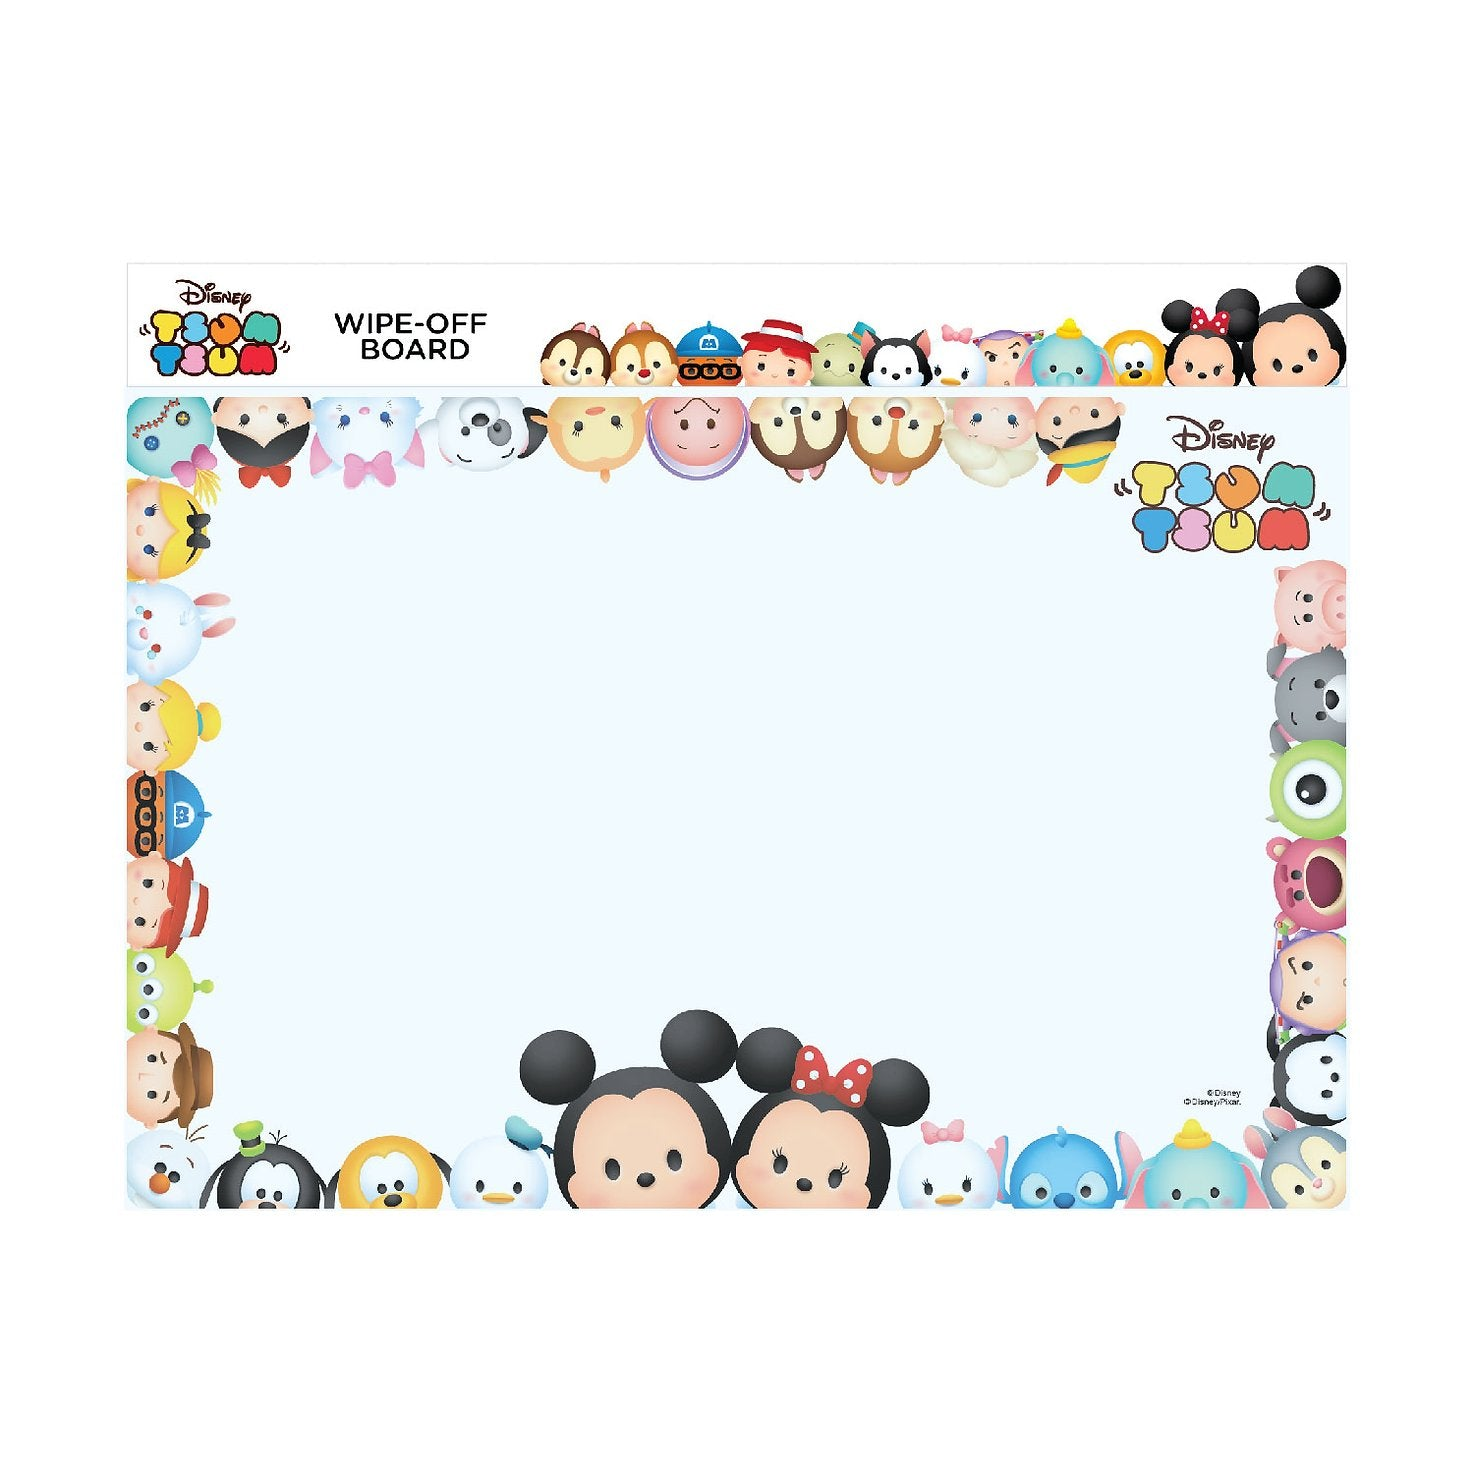 Tsum Tsum Wipe-off Board